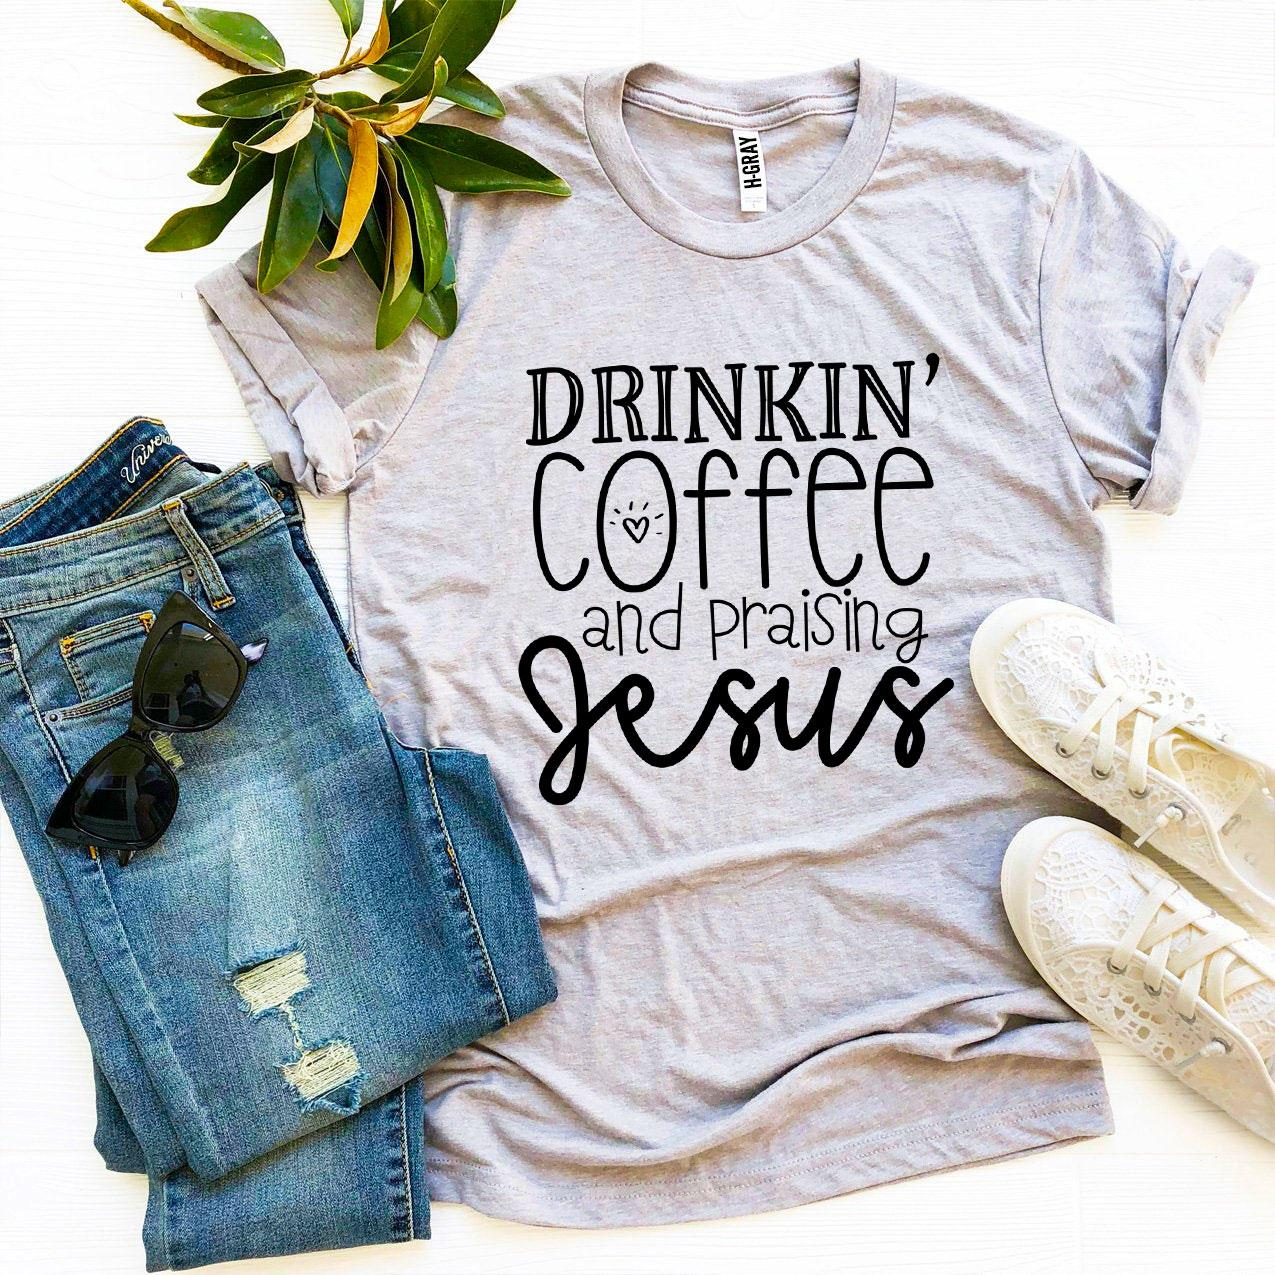 Drinkin' Coffee And Praising Jesus T-shirt - Cream and Sugar Coffee House & Brewing Co.